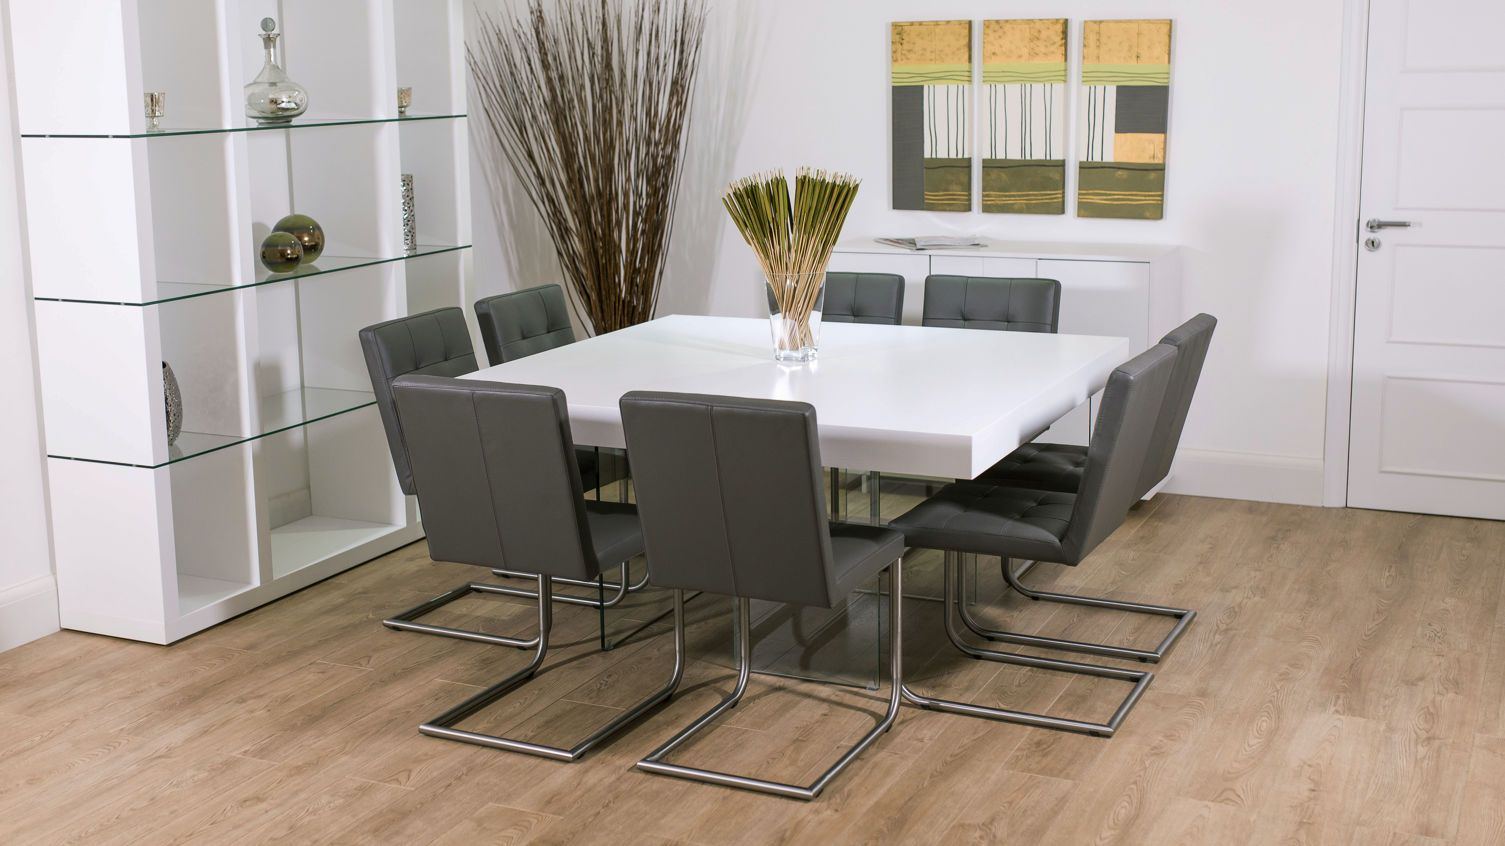 8 Seater Square Glass Dining Table Dining Table Marble Square Dining Room Table Modern Square Dining Table